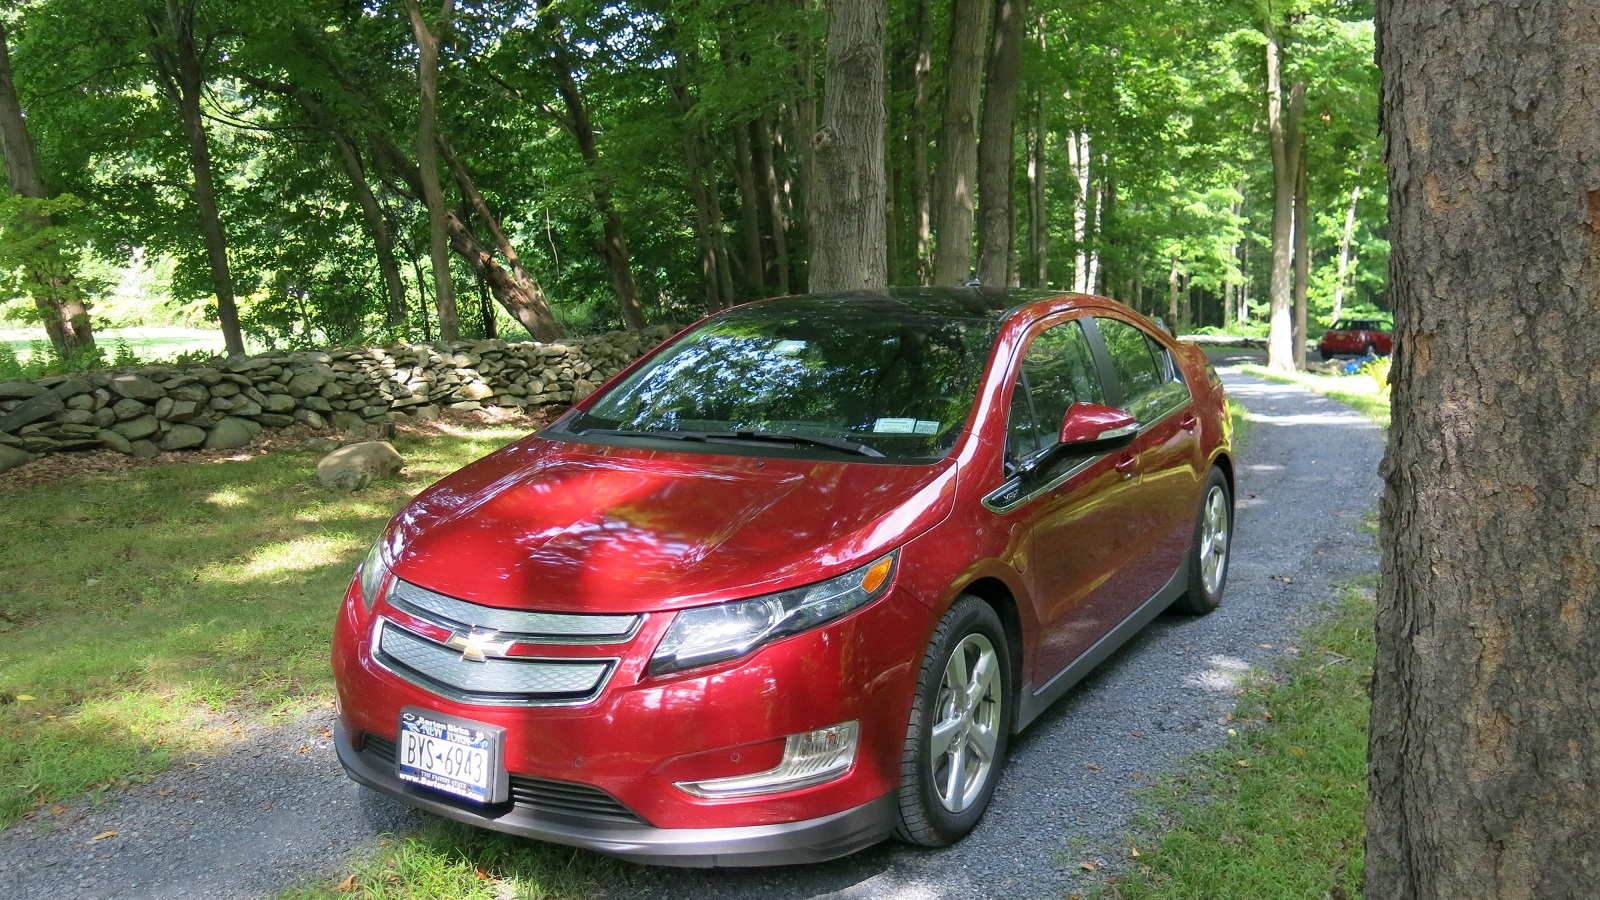 2011 Chevrolet Volt, before lease return, Hudson Valley, NY, Aug 2014 [photo: David Noland]